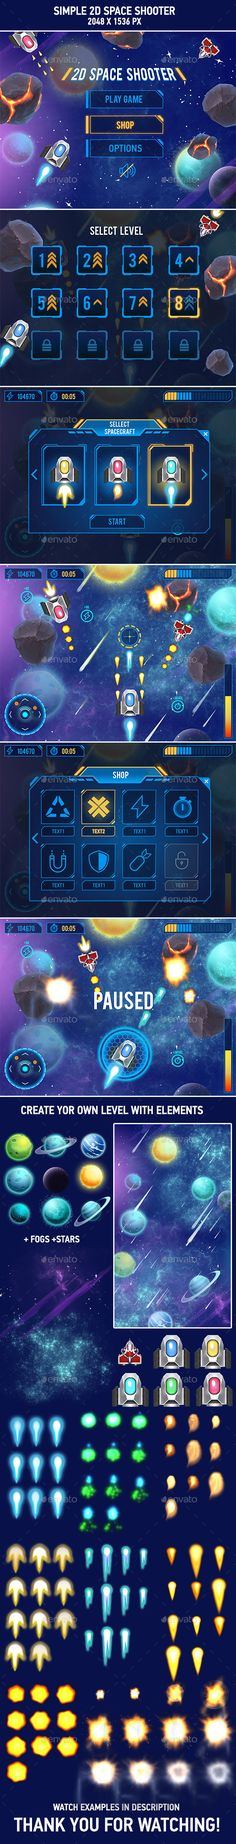 2D Space Shooter Game Asset — Photoshop PSD #explosion #shump • Available here → https://graphicriver.net/item/2d-space-shooter-game-asset/19492478?ref=pxcr